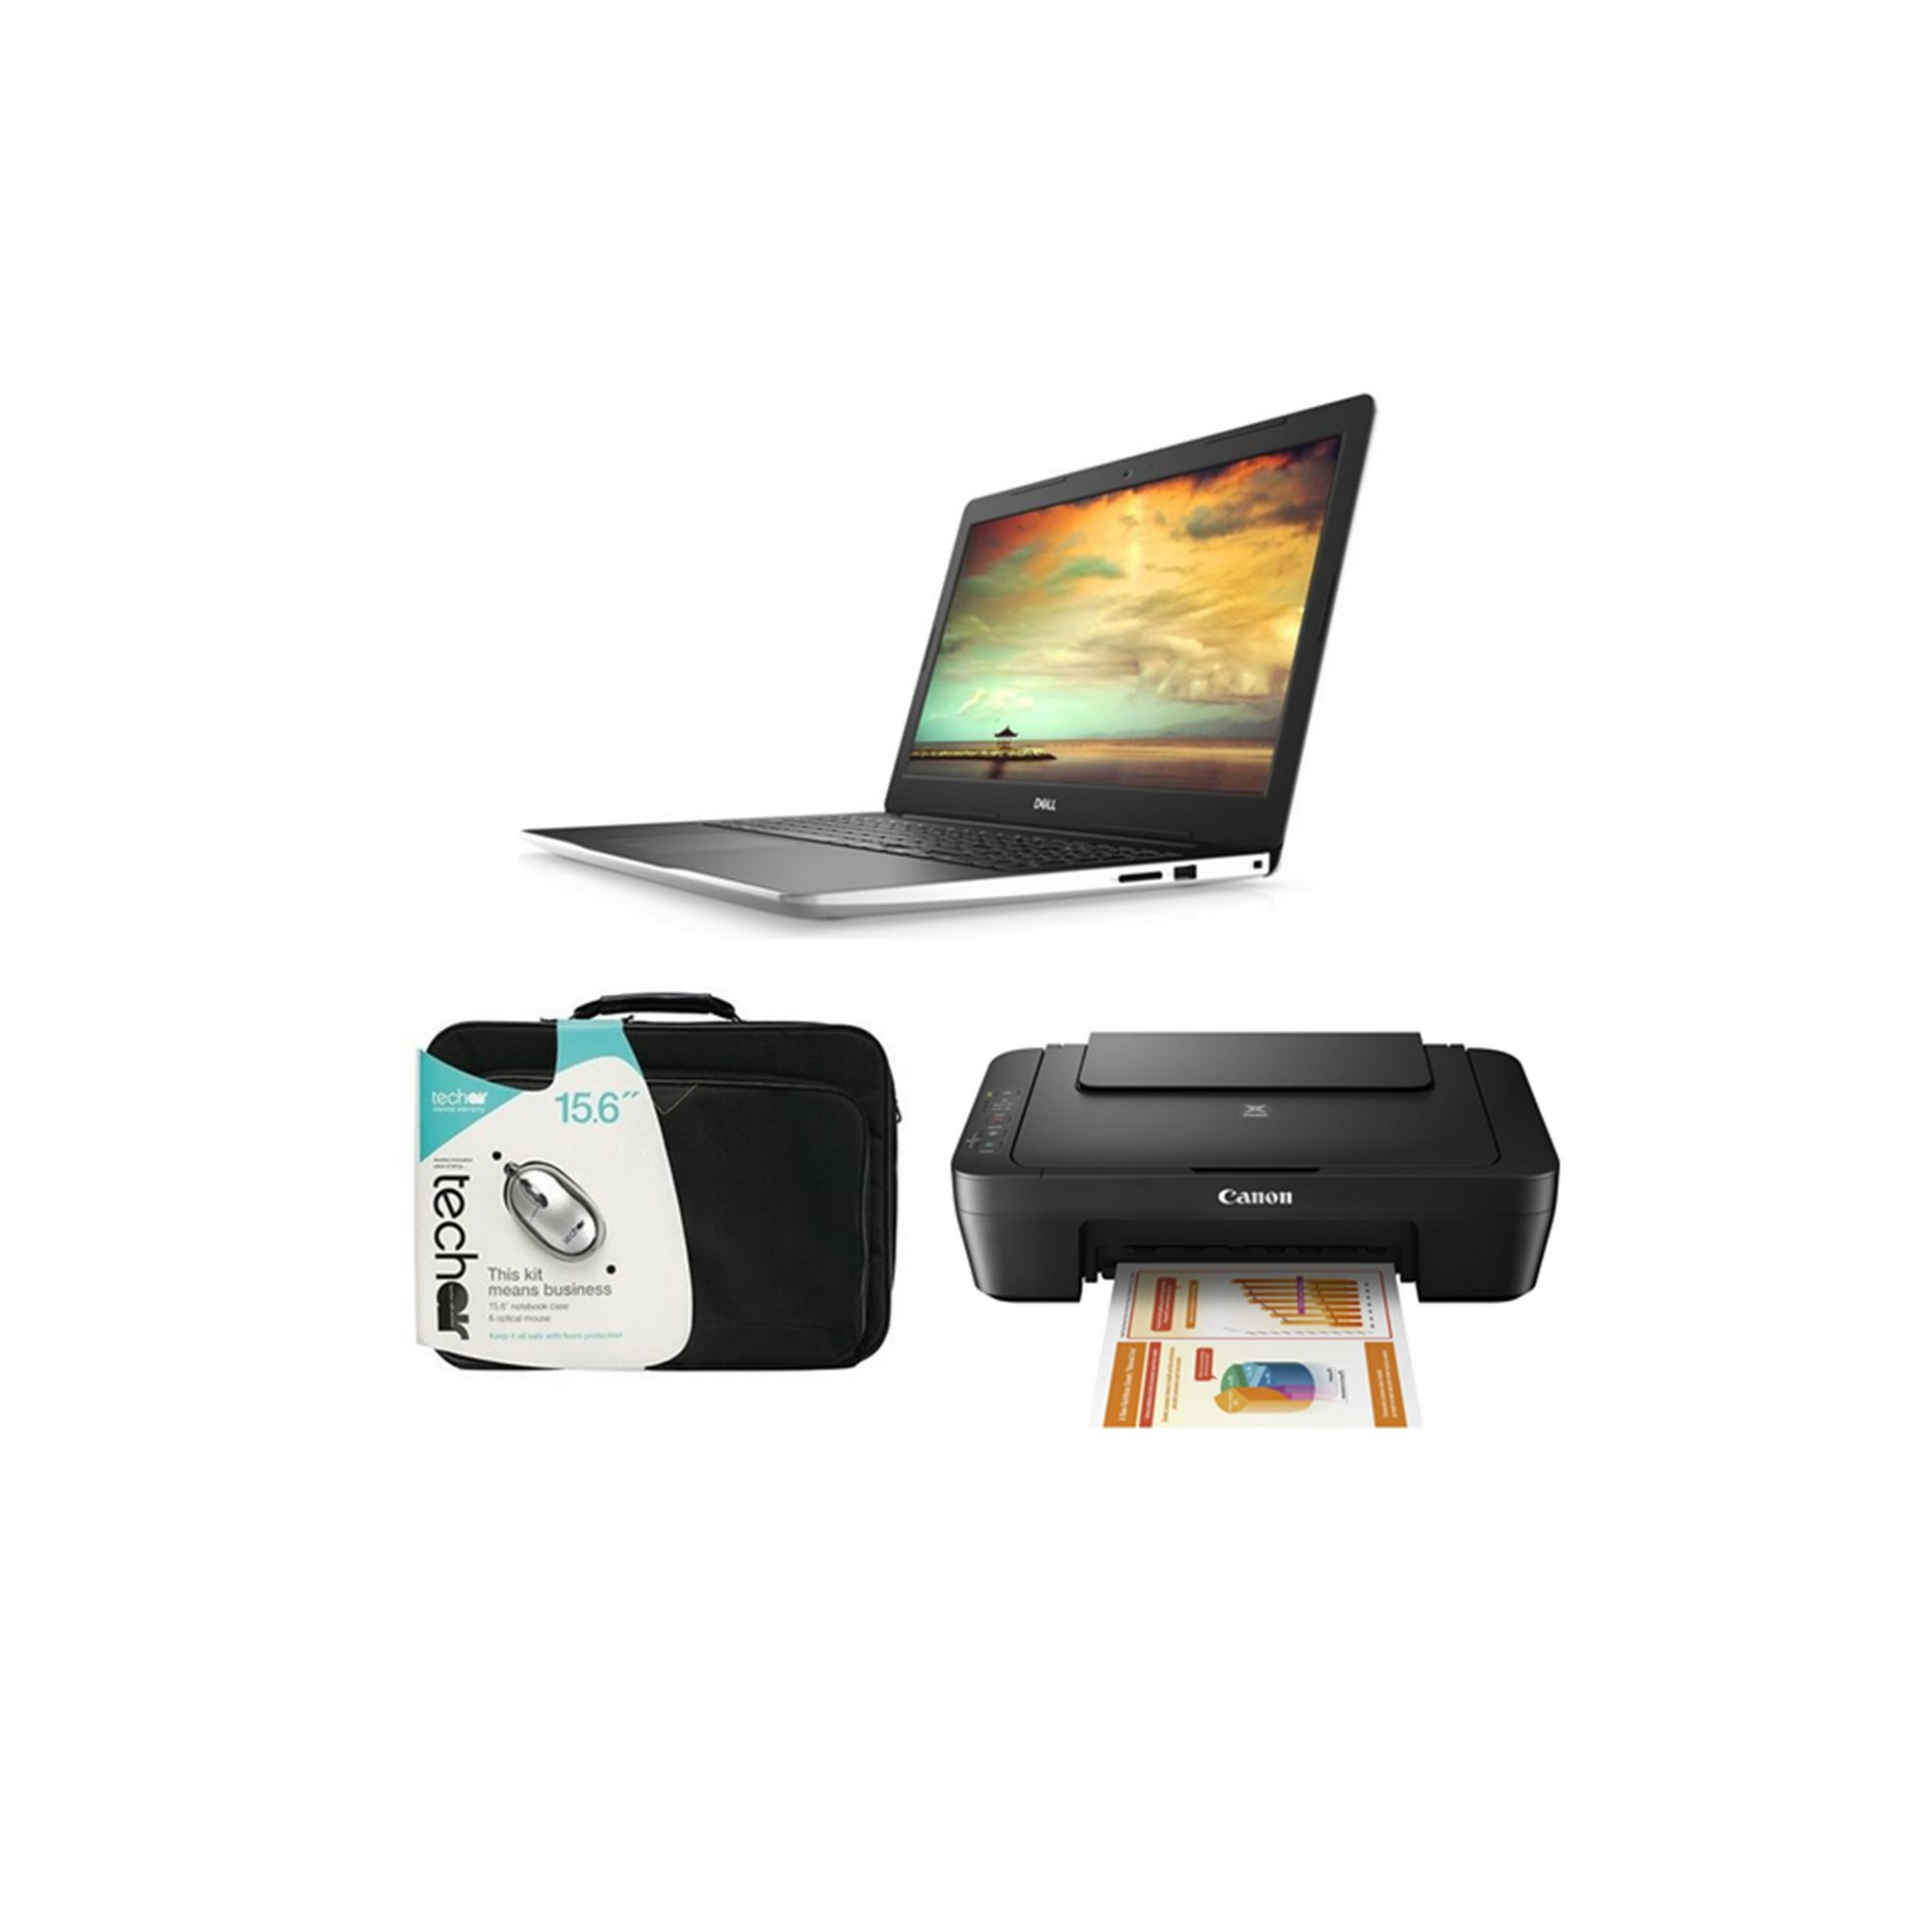 Image of DELL Inspiron 15 Inch 3000 Win10 Laptop - Case and Printer Bundle